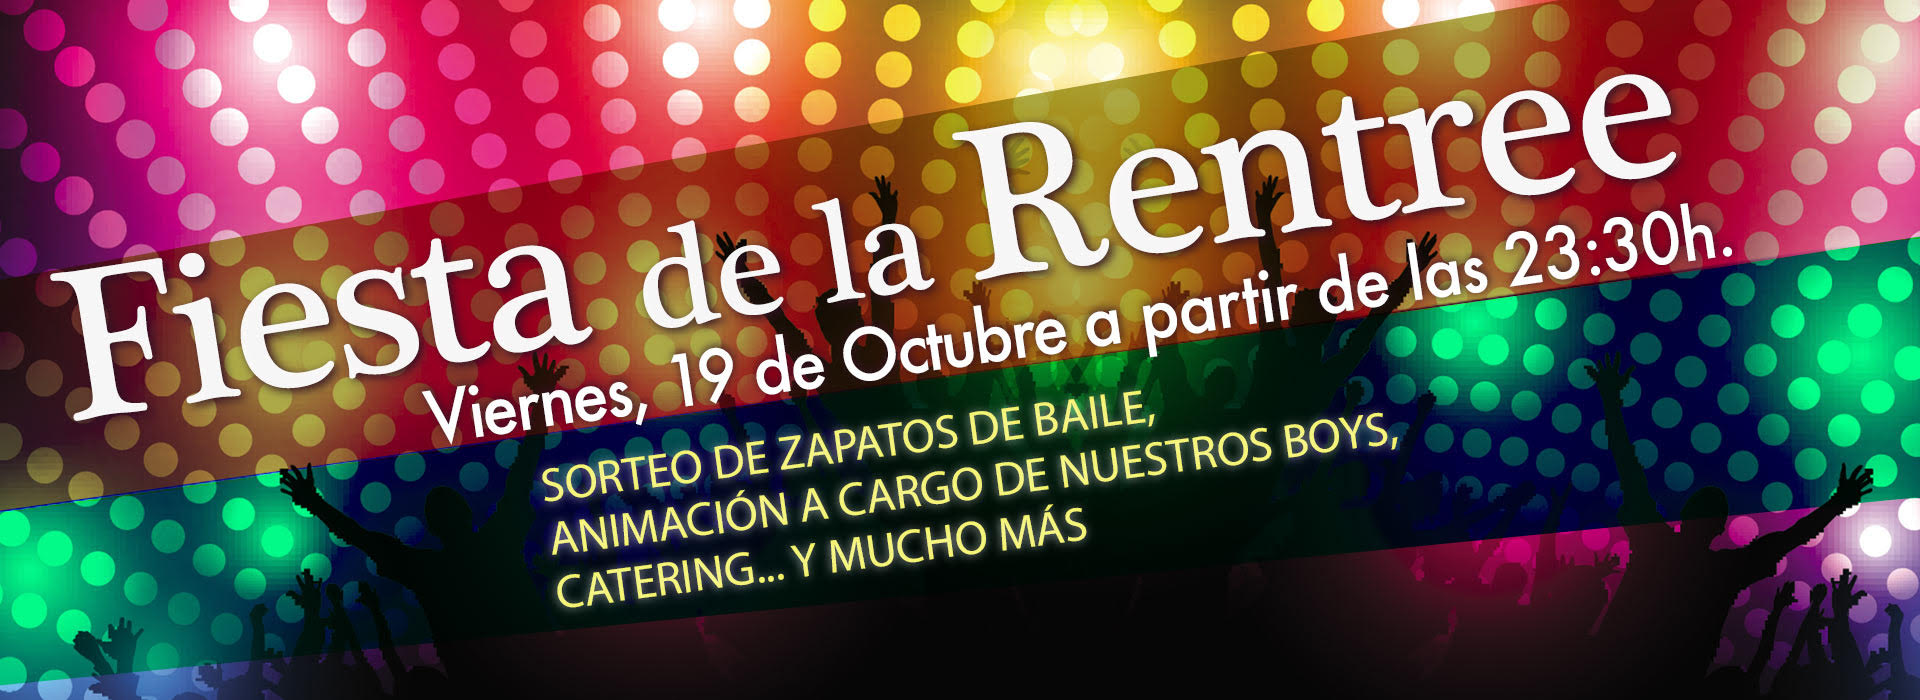 Rentree-4-OCT